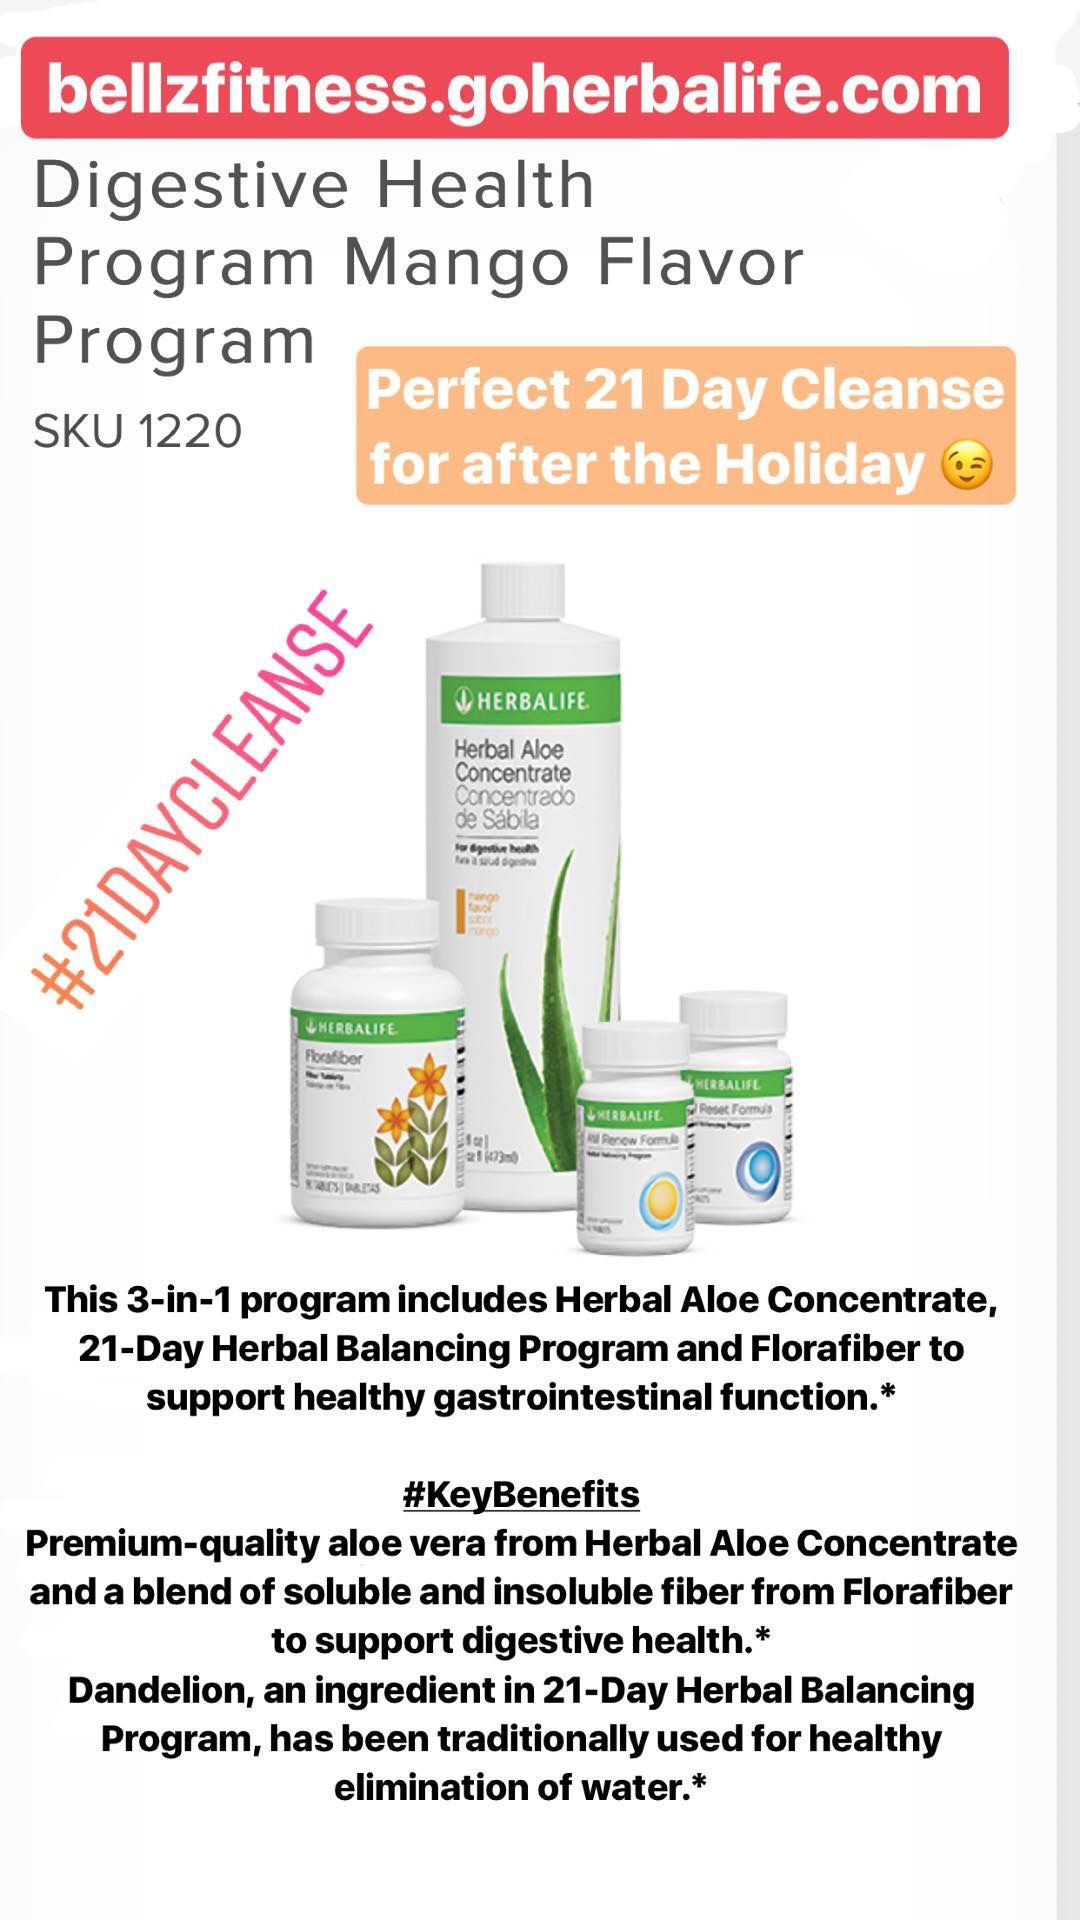 Need a detox after 4th of July wknd ?!?. We got this 21 Day Cleanse to get  you started . . #21DayCleanse #HolidayDetox #Herbalife